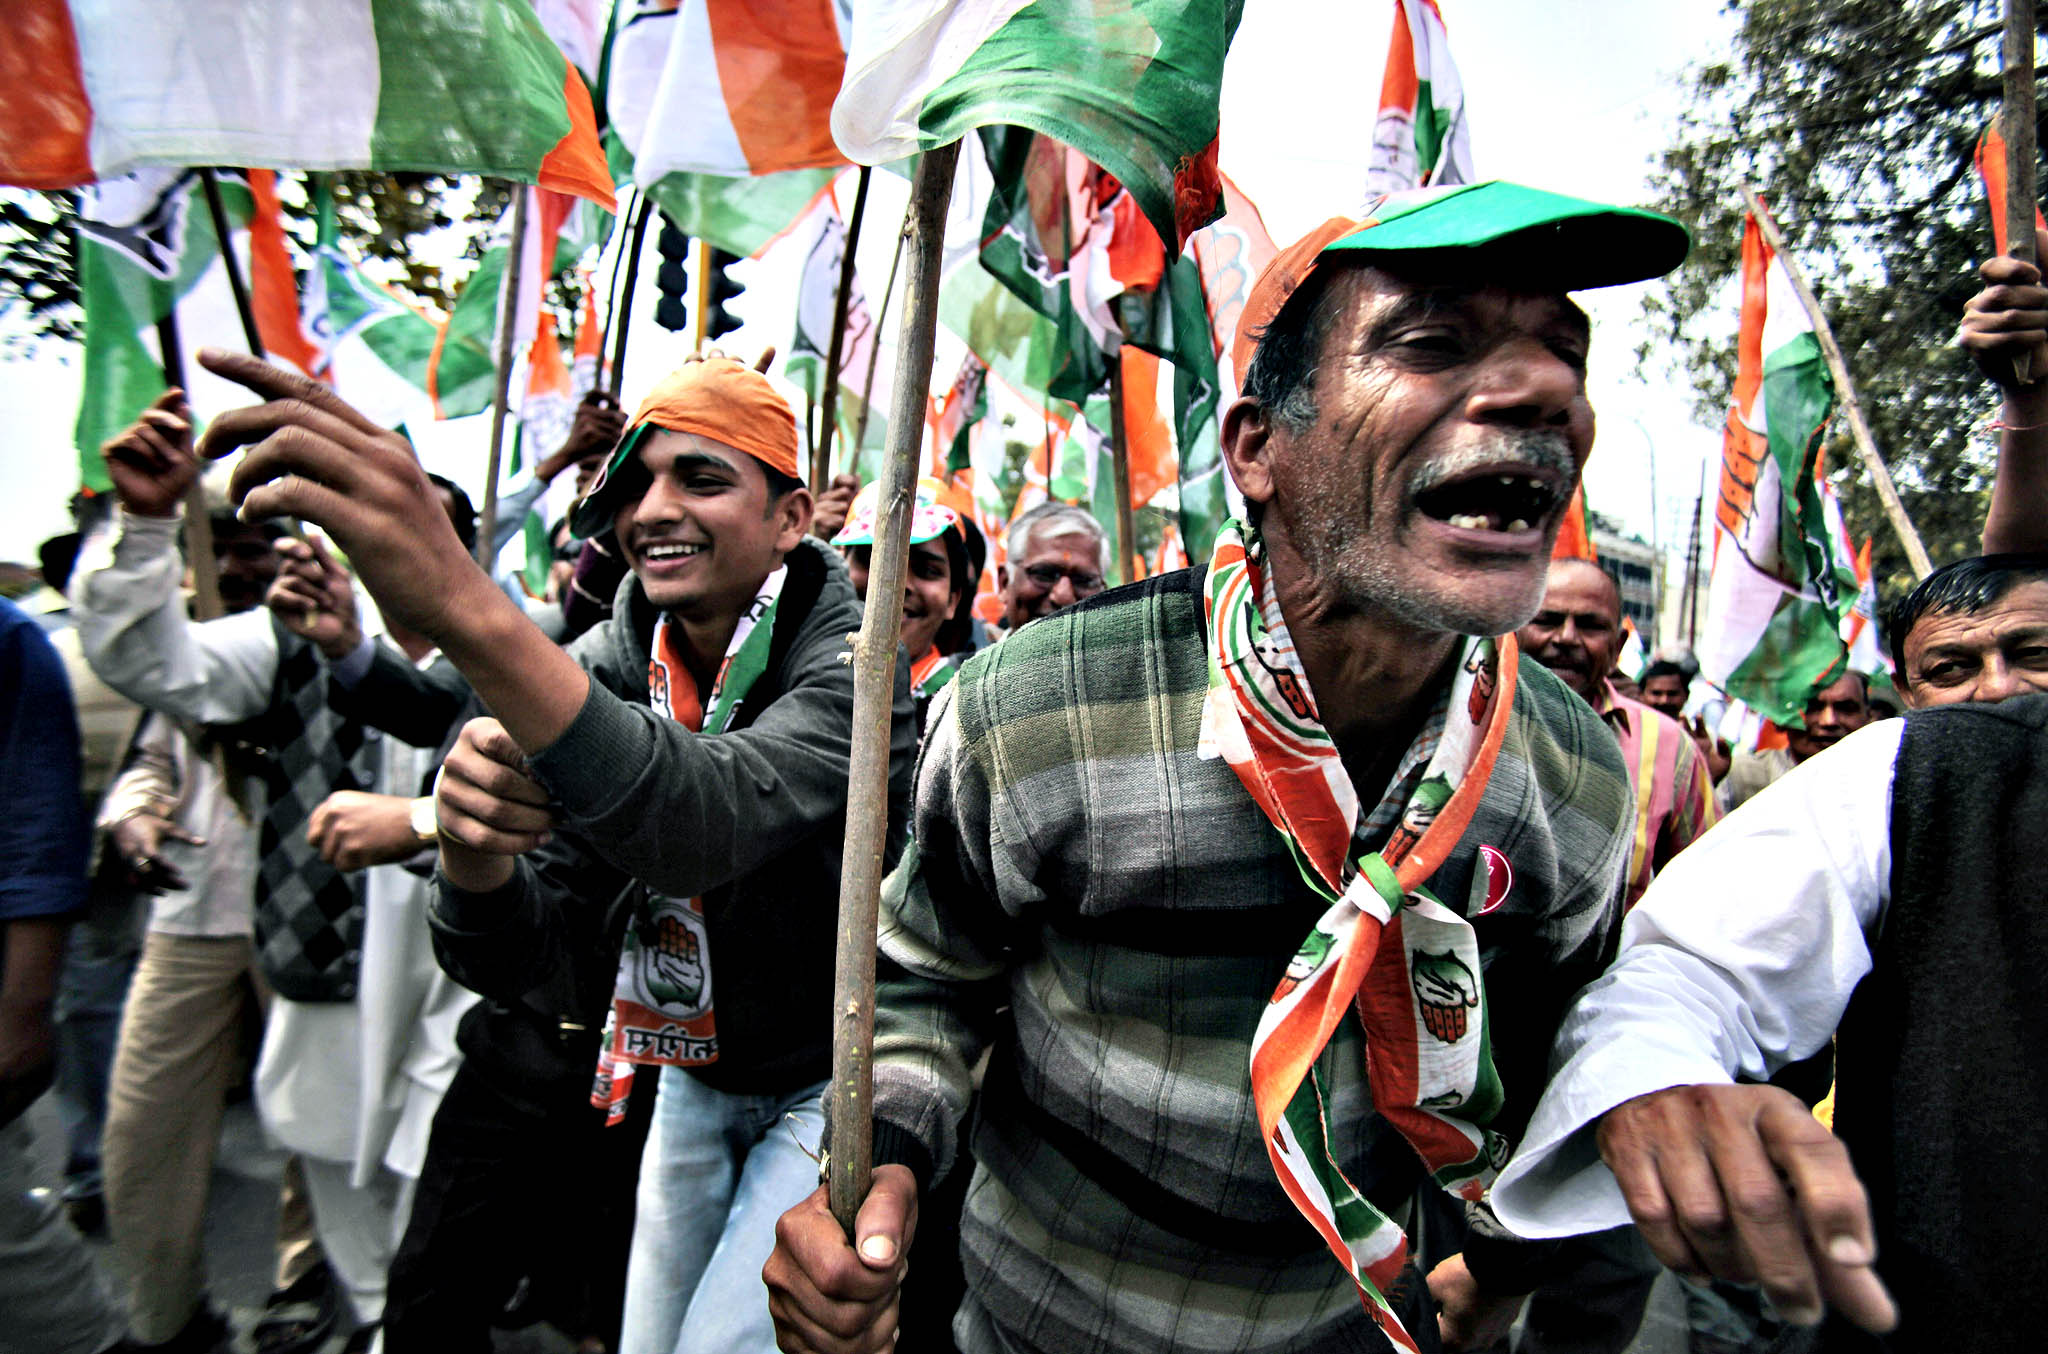 Congress party supporters accompany a party nominee to file nomination papers for the upcoming parliamentary elections in Jammu, India, Thursday, March 20, 2014. India will hold national elections from April 7 to May 12, kicking off a vote that many observers see as the most important election in more than 30 years in the world's largest democracy.